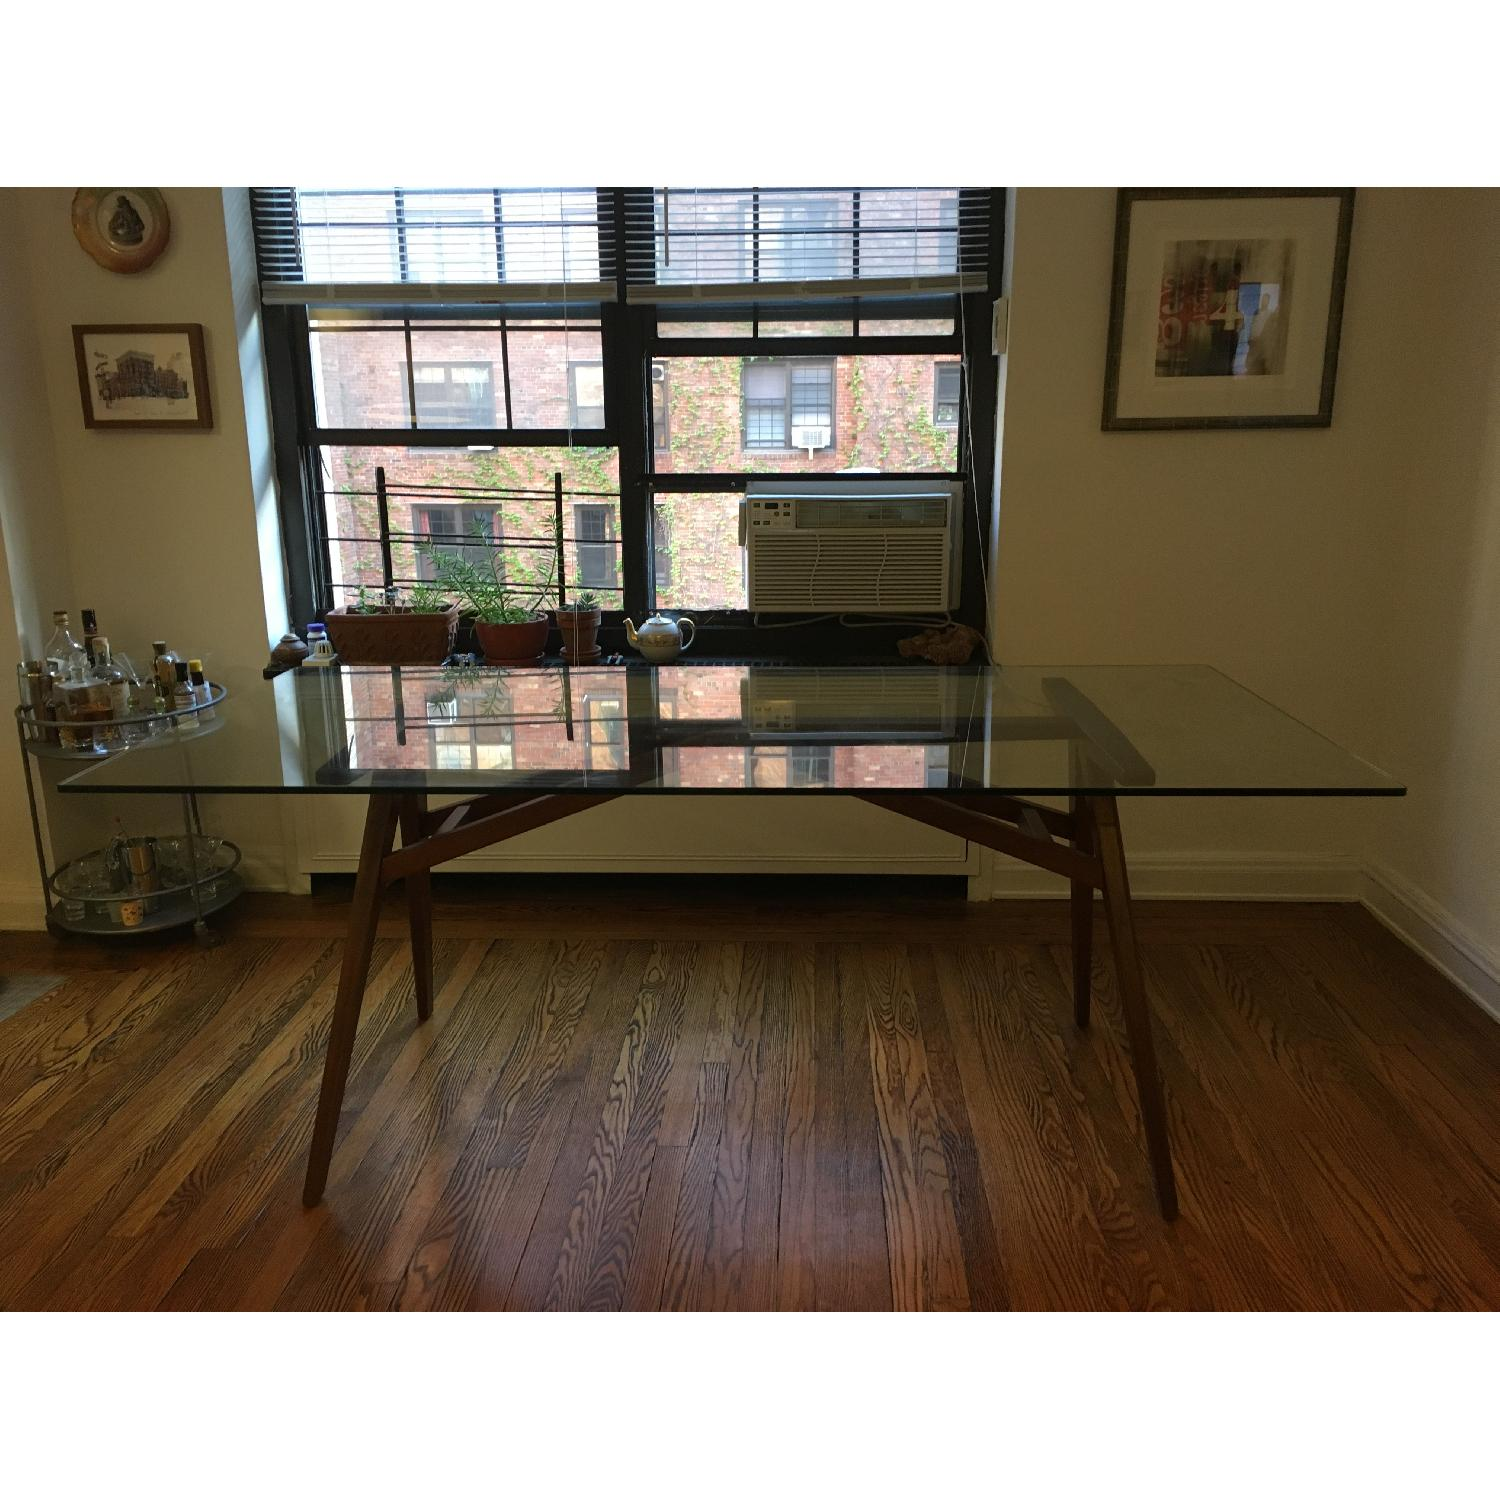 West Elm Modern Glass & Walnut-Stained Dining Table - image-2